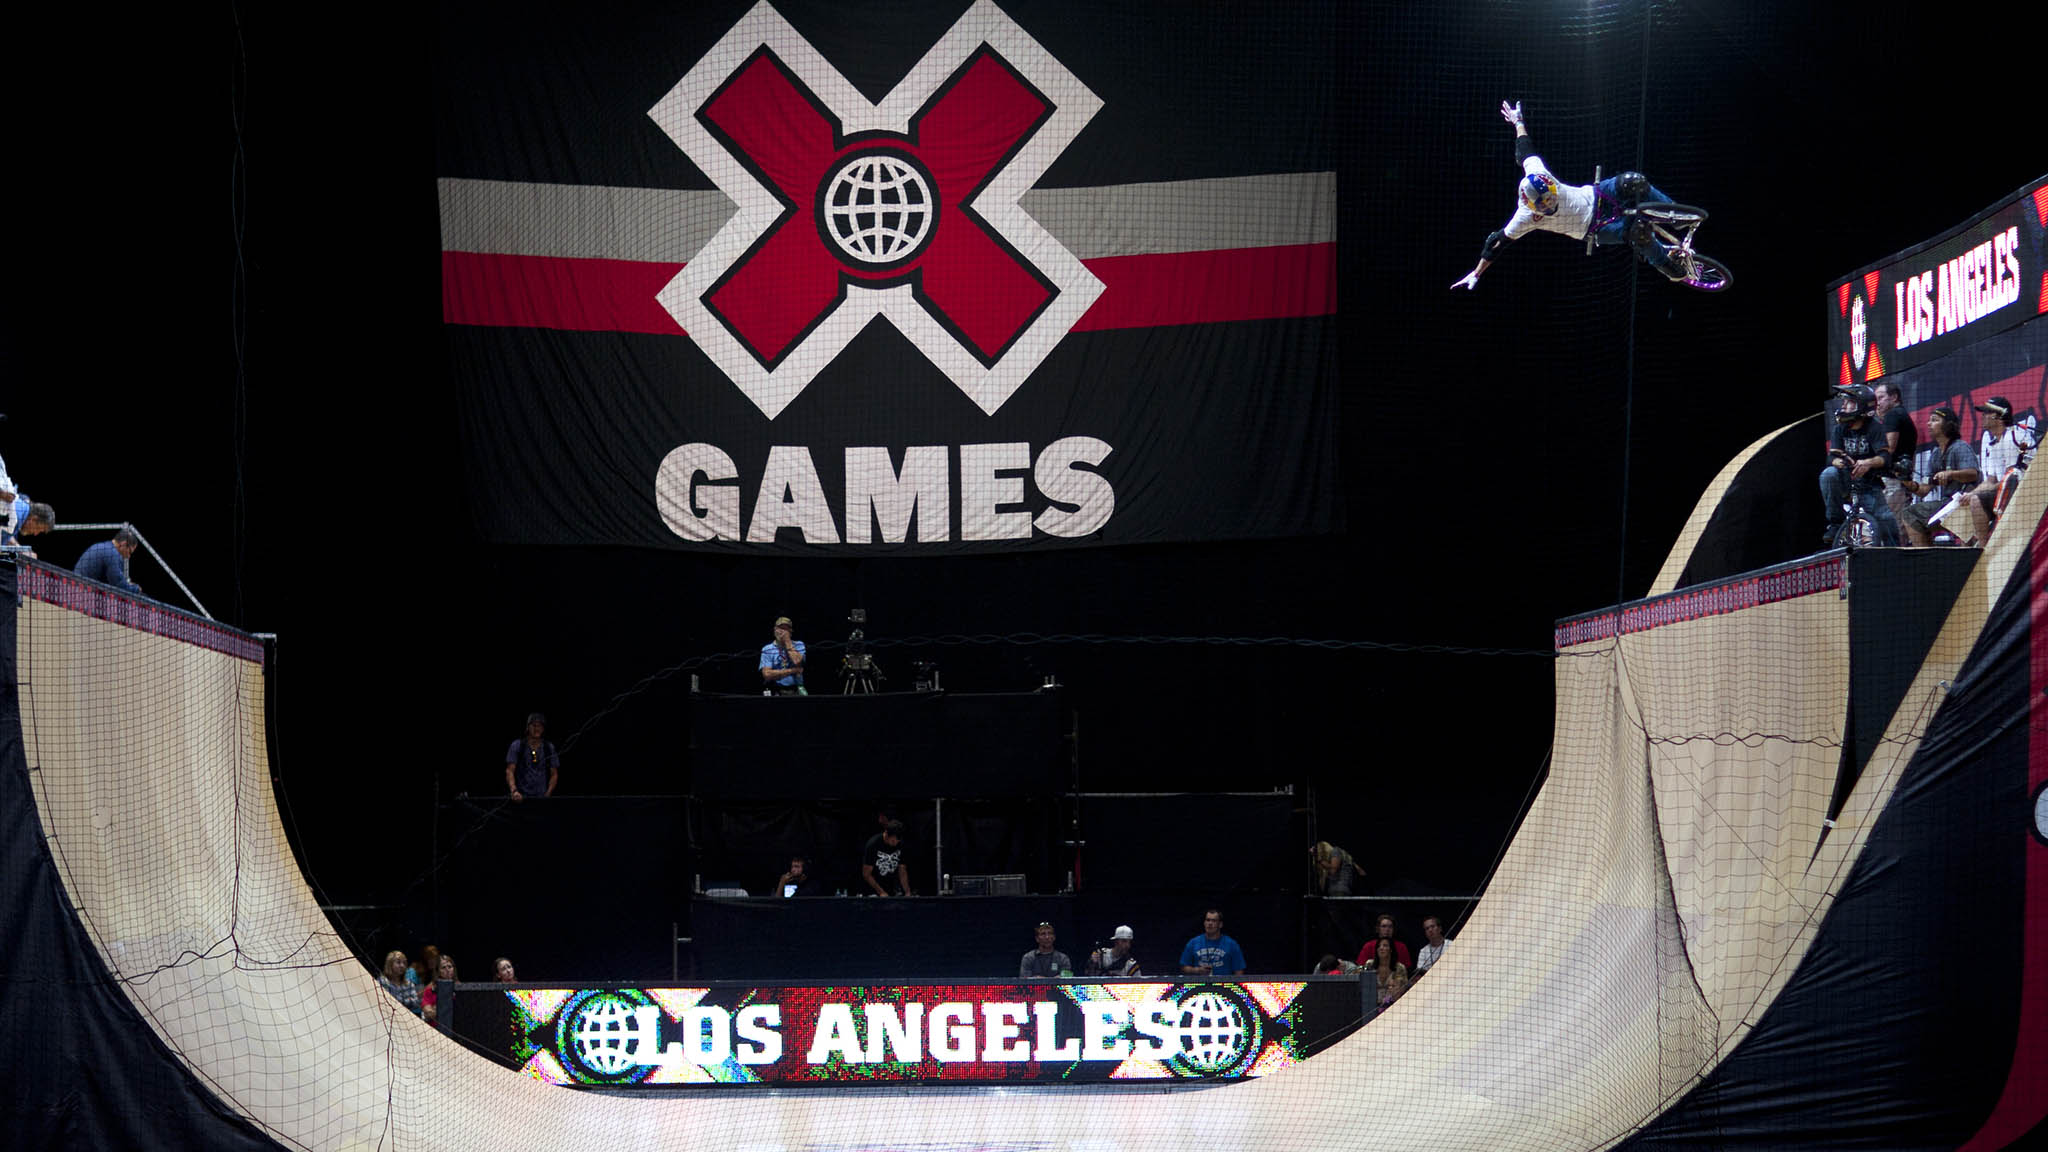 No-hander, X Games Los Angeles, 2010